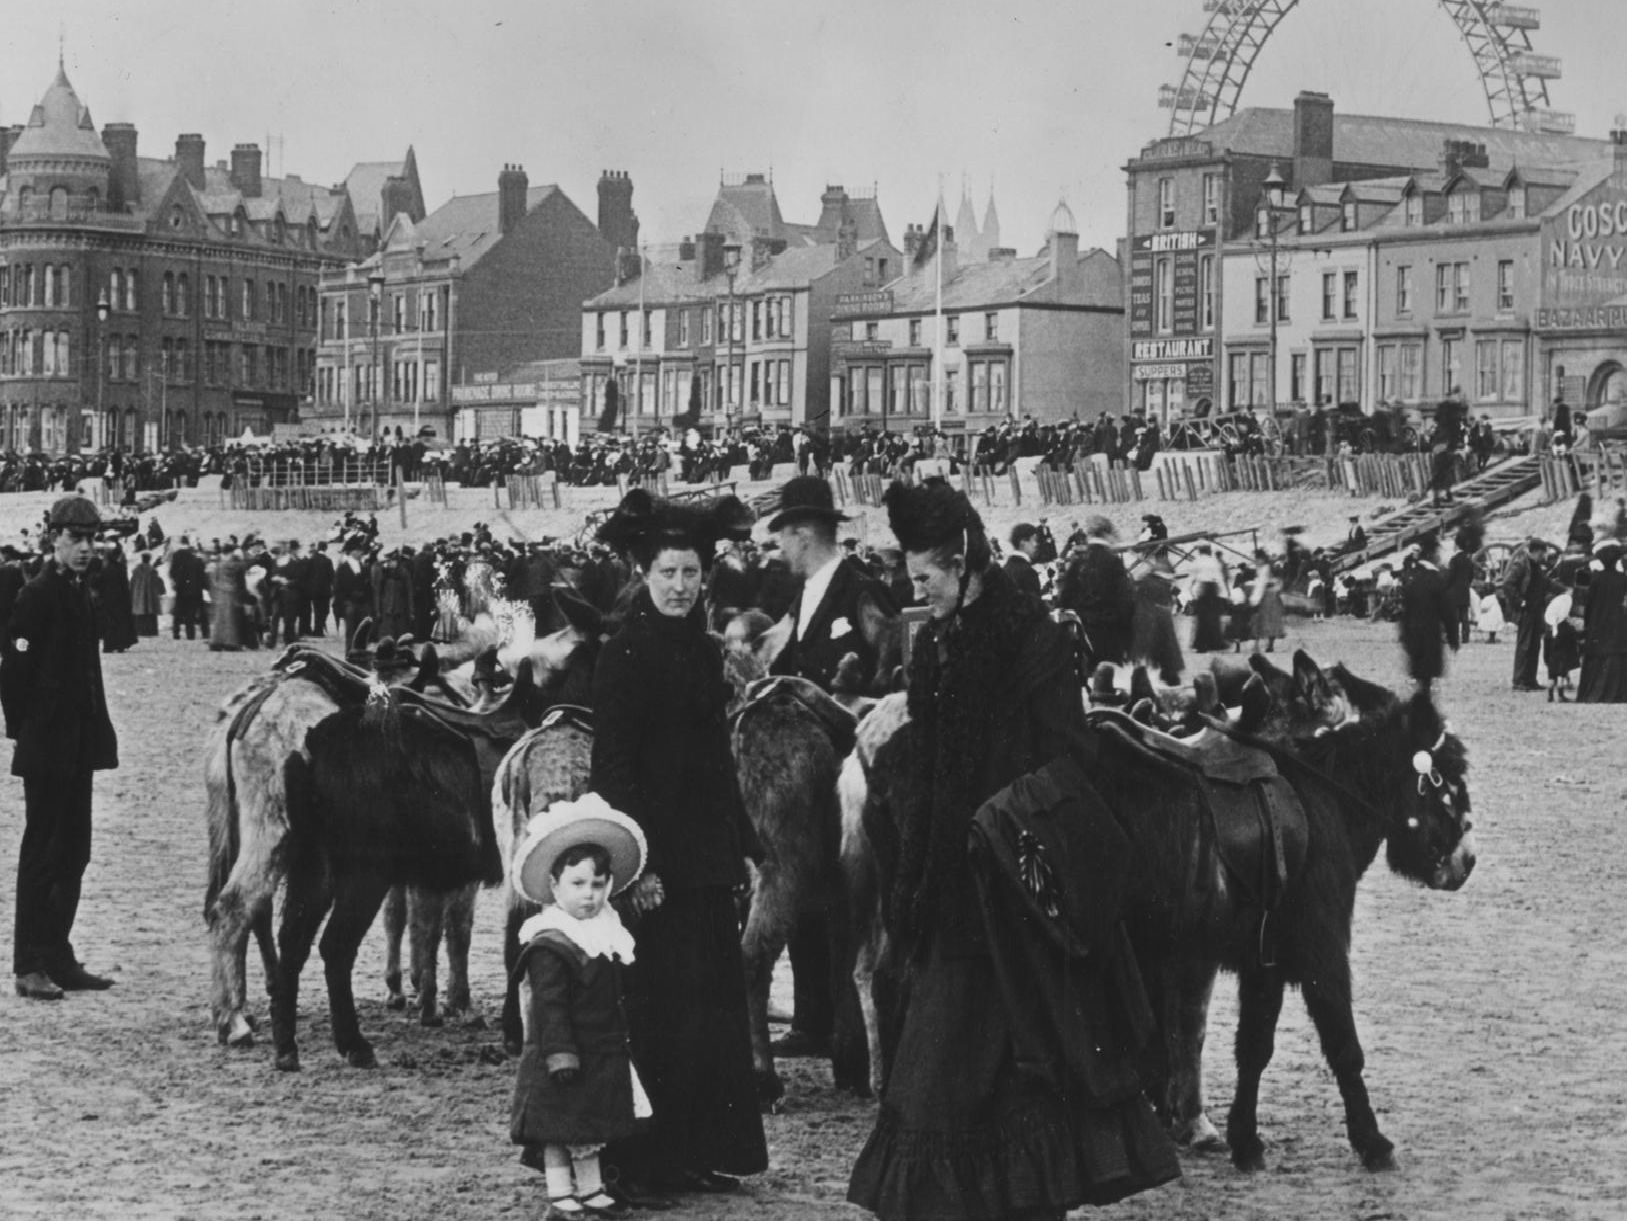 A family preparing to take a donkey ride on Blackpool beach, 1903. (Pic: Rischgitz/Getty Images)